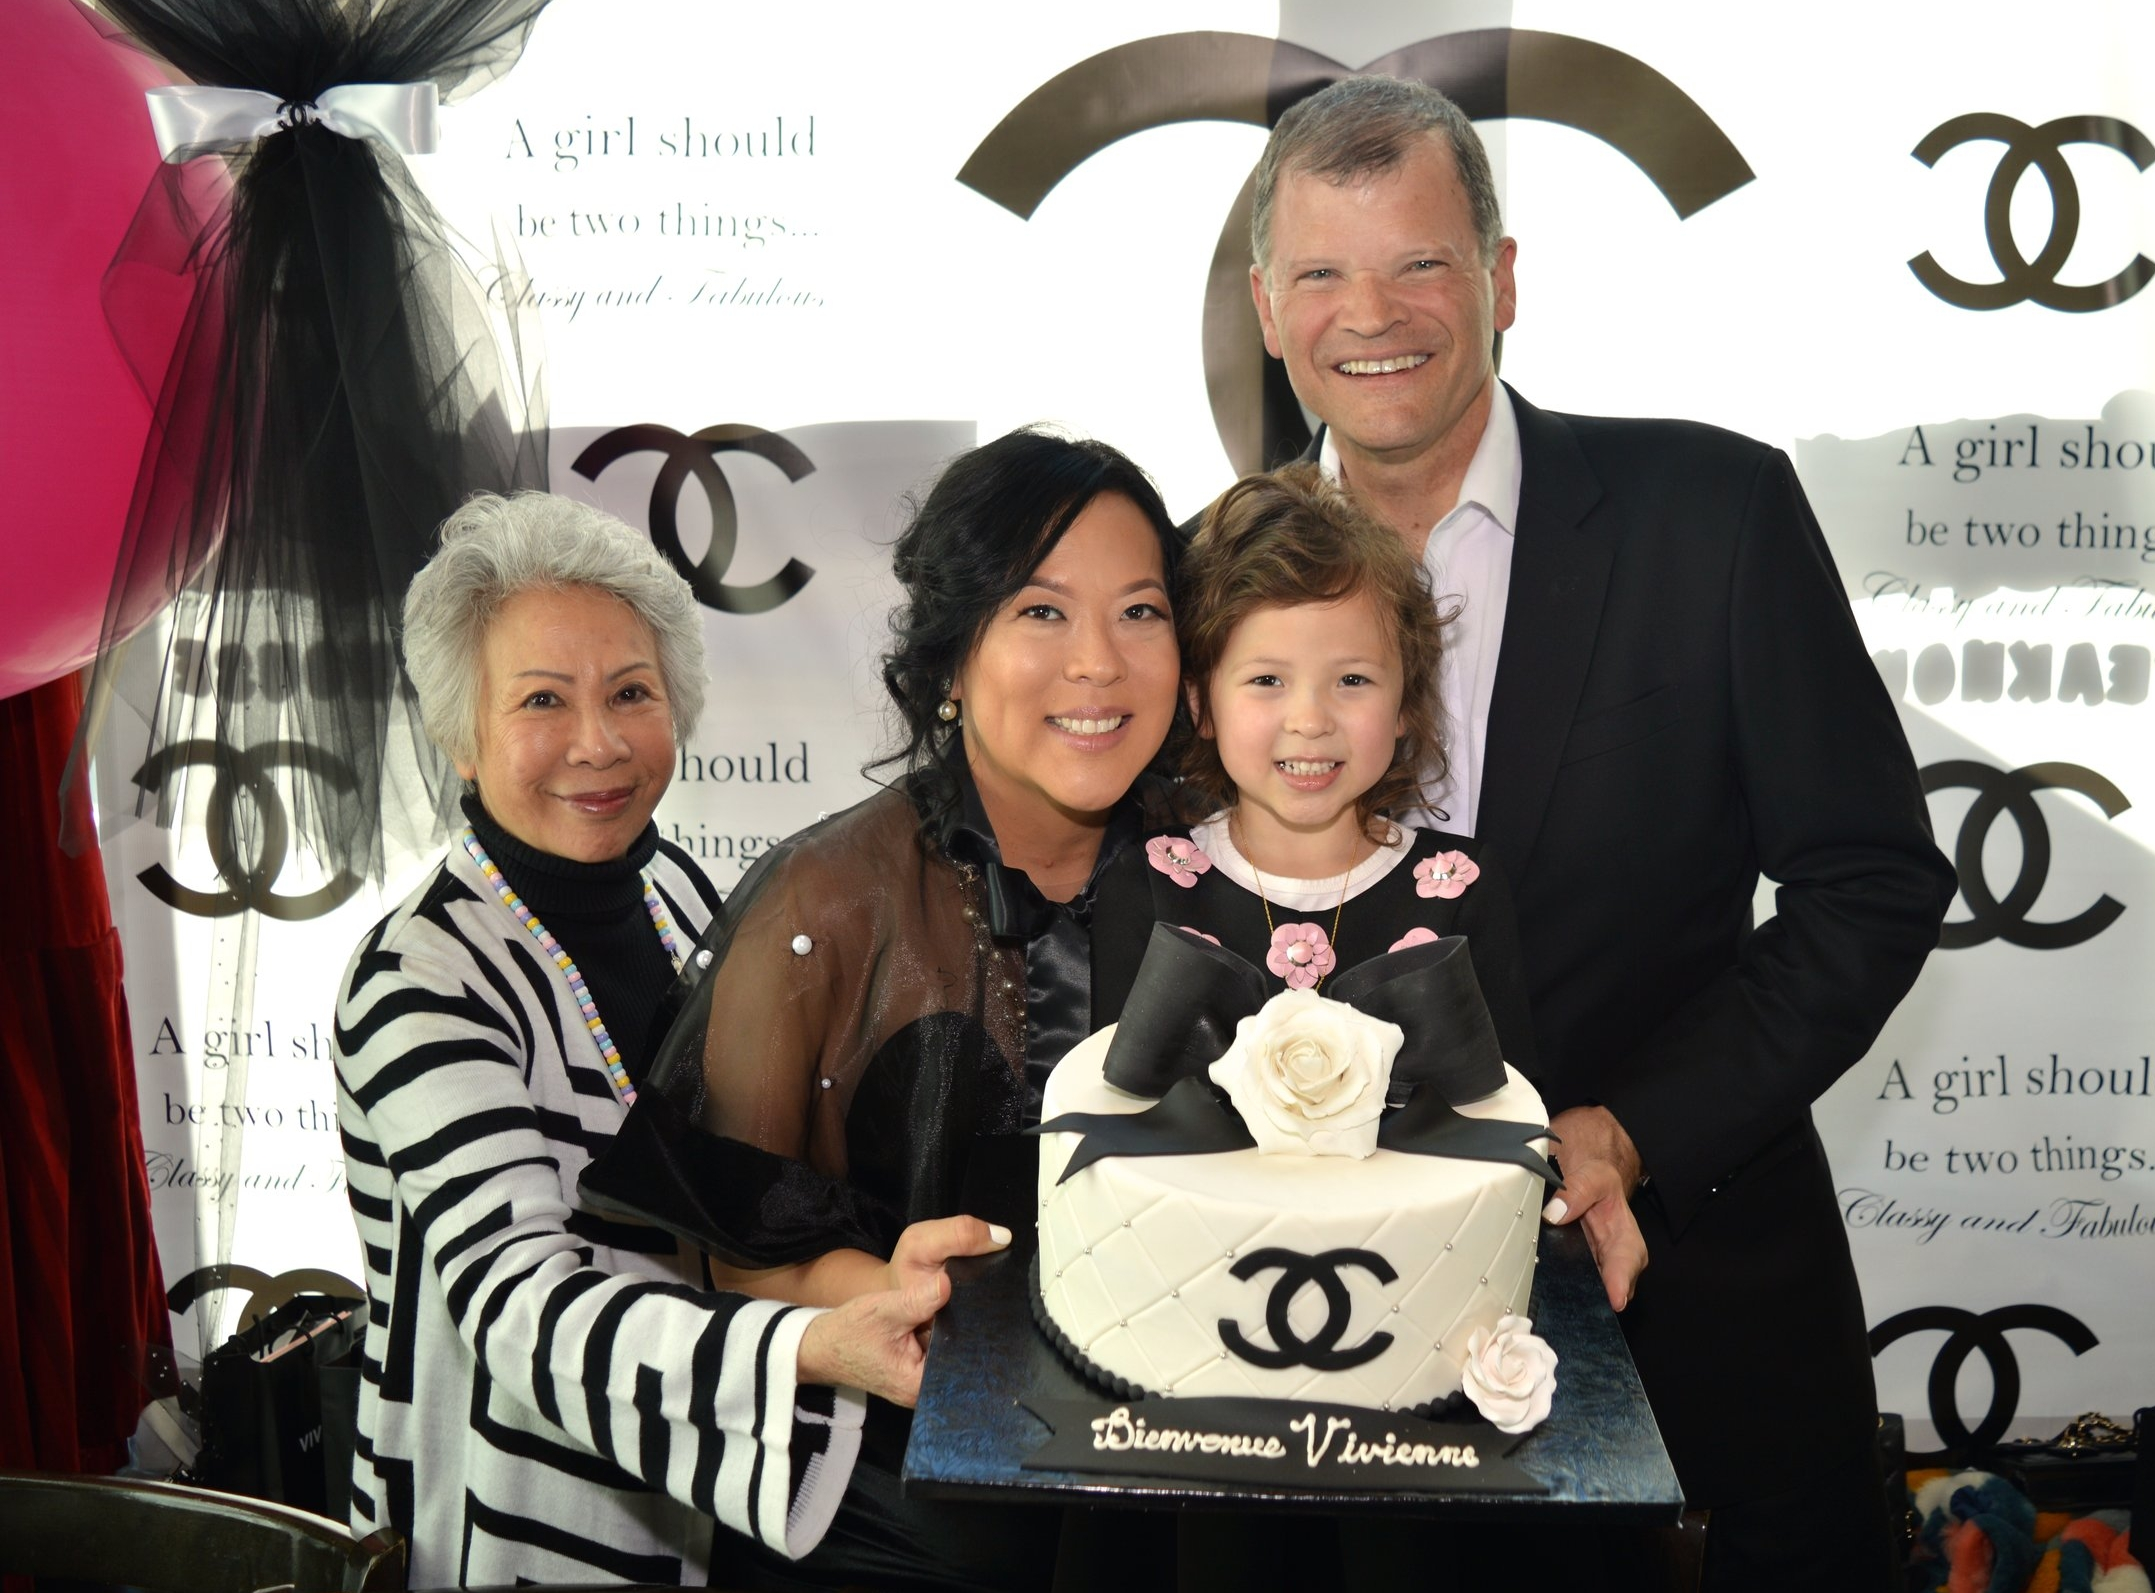 """Three generations captured at once. As Gabrielle so eloquently said, """"A girl should be two things, classy & fabulous."""" Indeed, these three generations are fulfilling that mantra."""